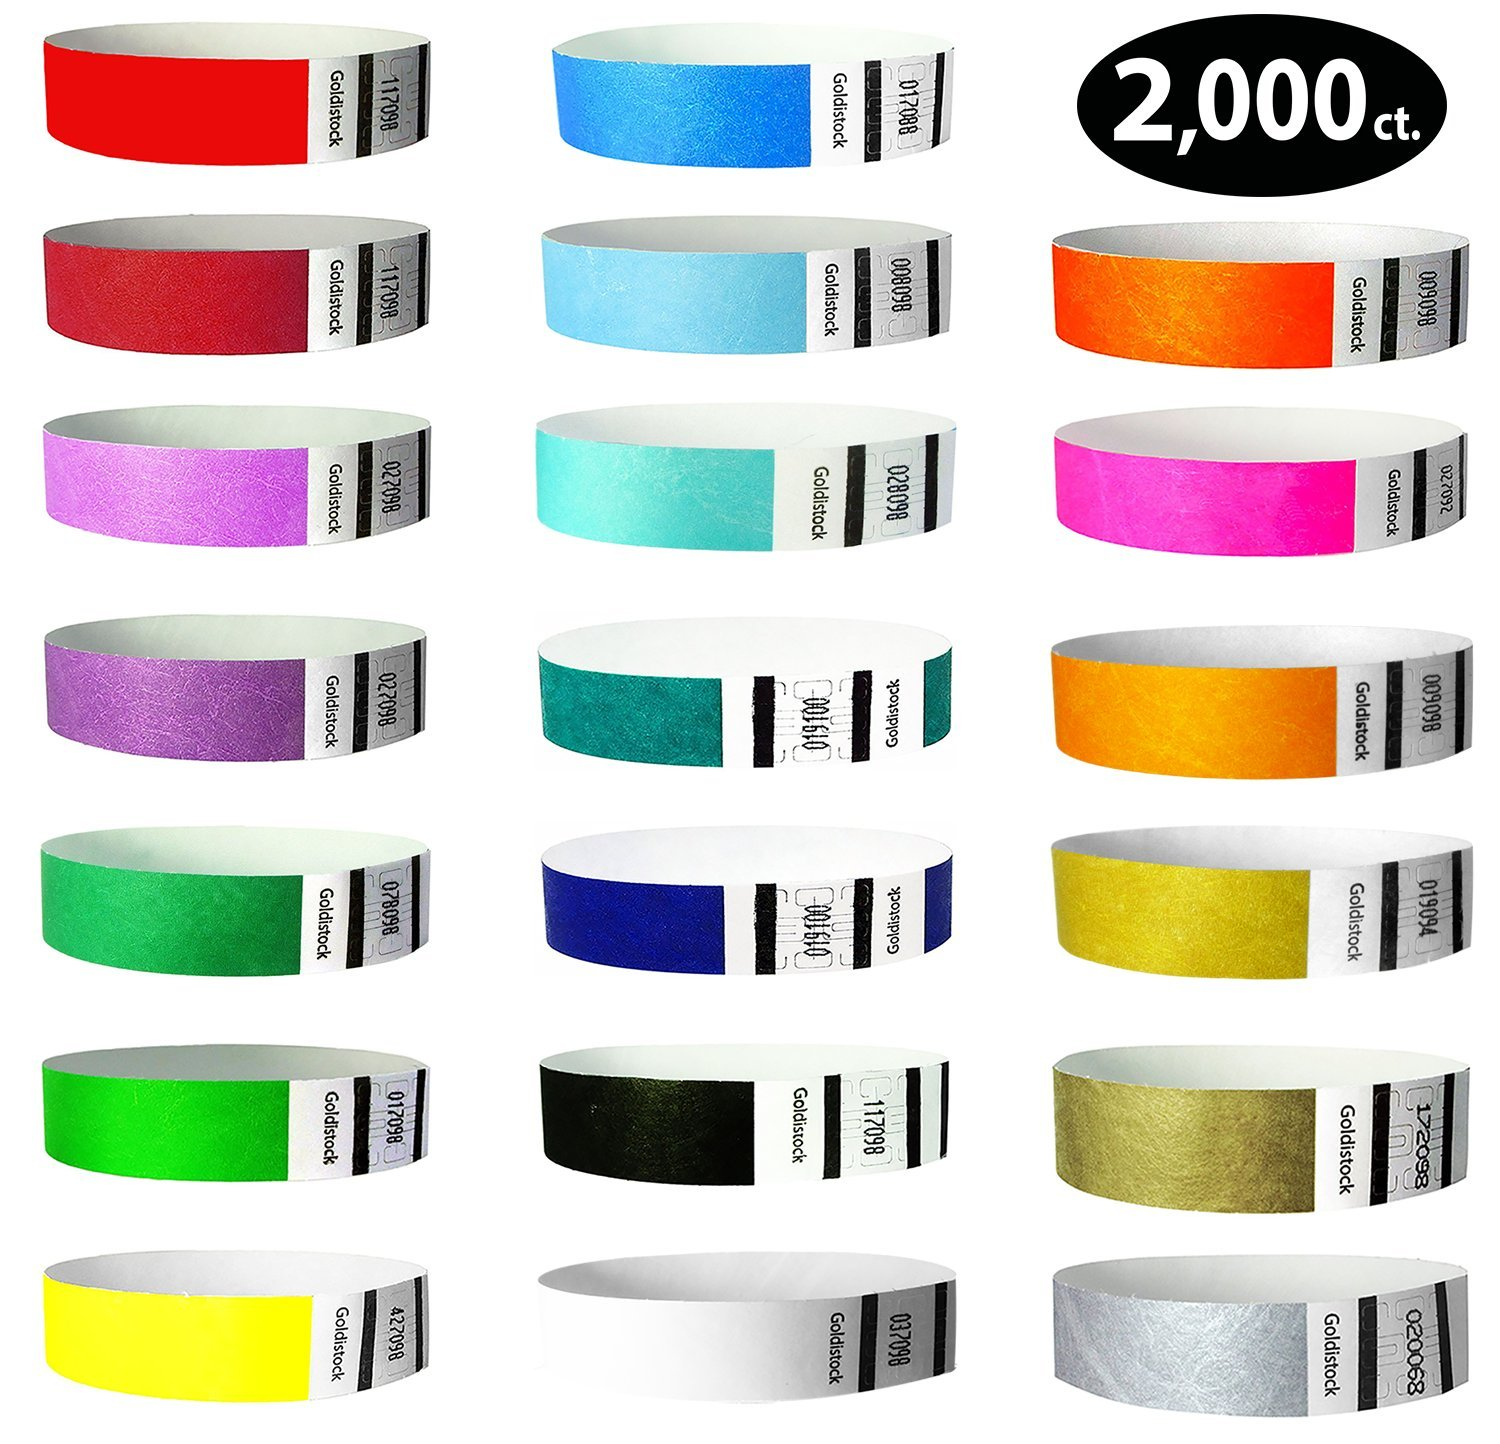 Tyvek Wristbands - Goldistock''Top 20'' 2,000 Ct. Variety Pack- ¾'' Arm Bands - 20 Colors:Green, Blue, Red, Yellow, Orange &15 More - Paper-Like Party Armbands - Wrist Bands for Upgrading Your Event by Goldistock